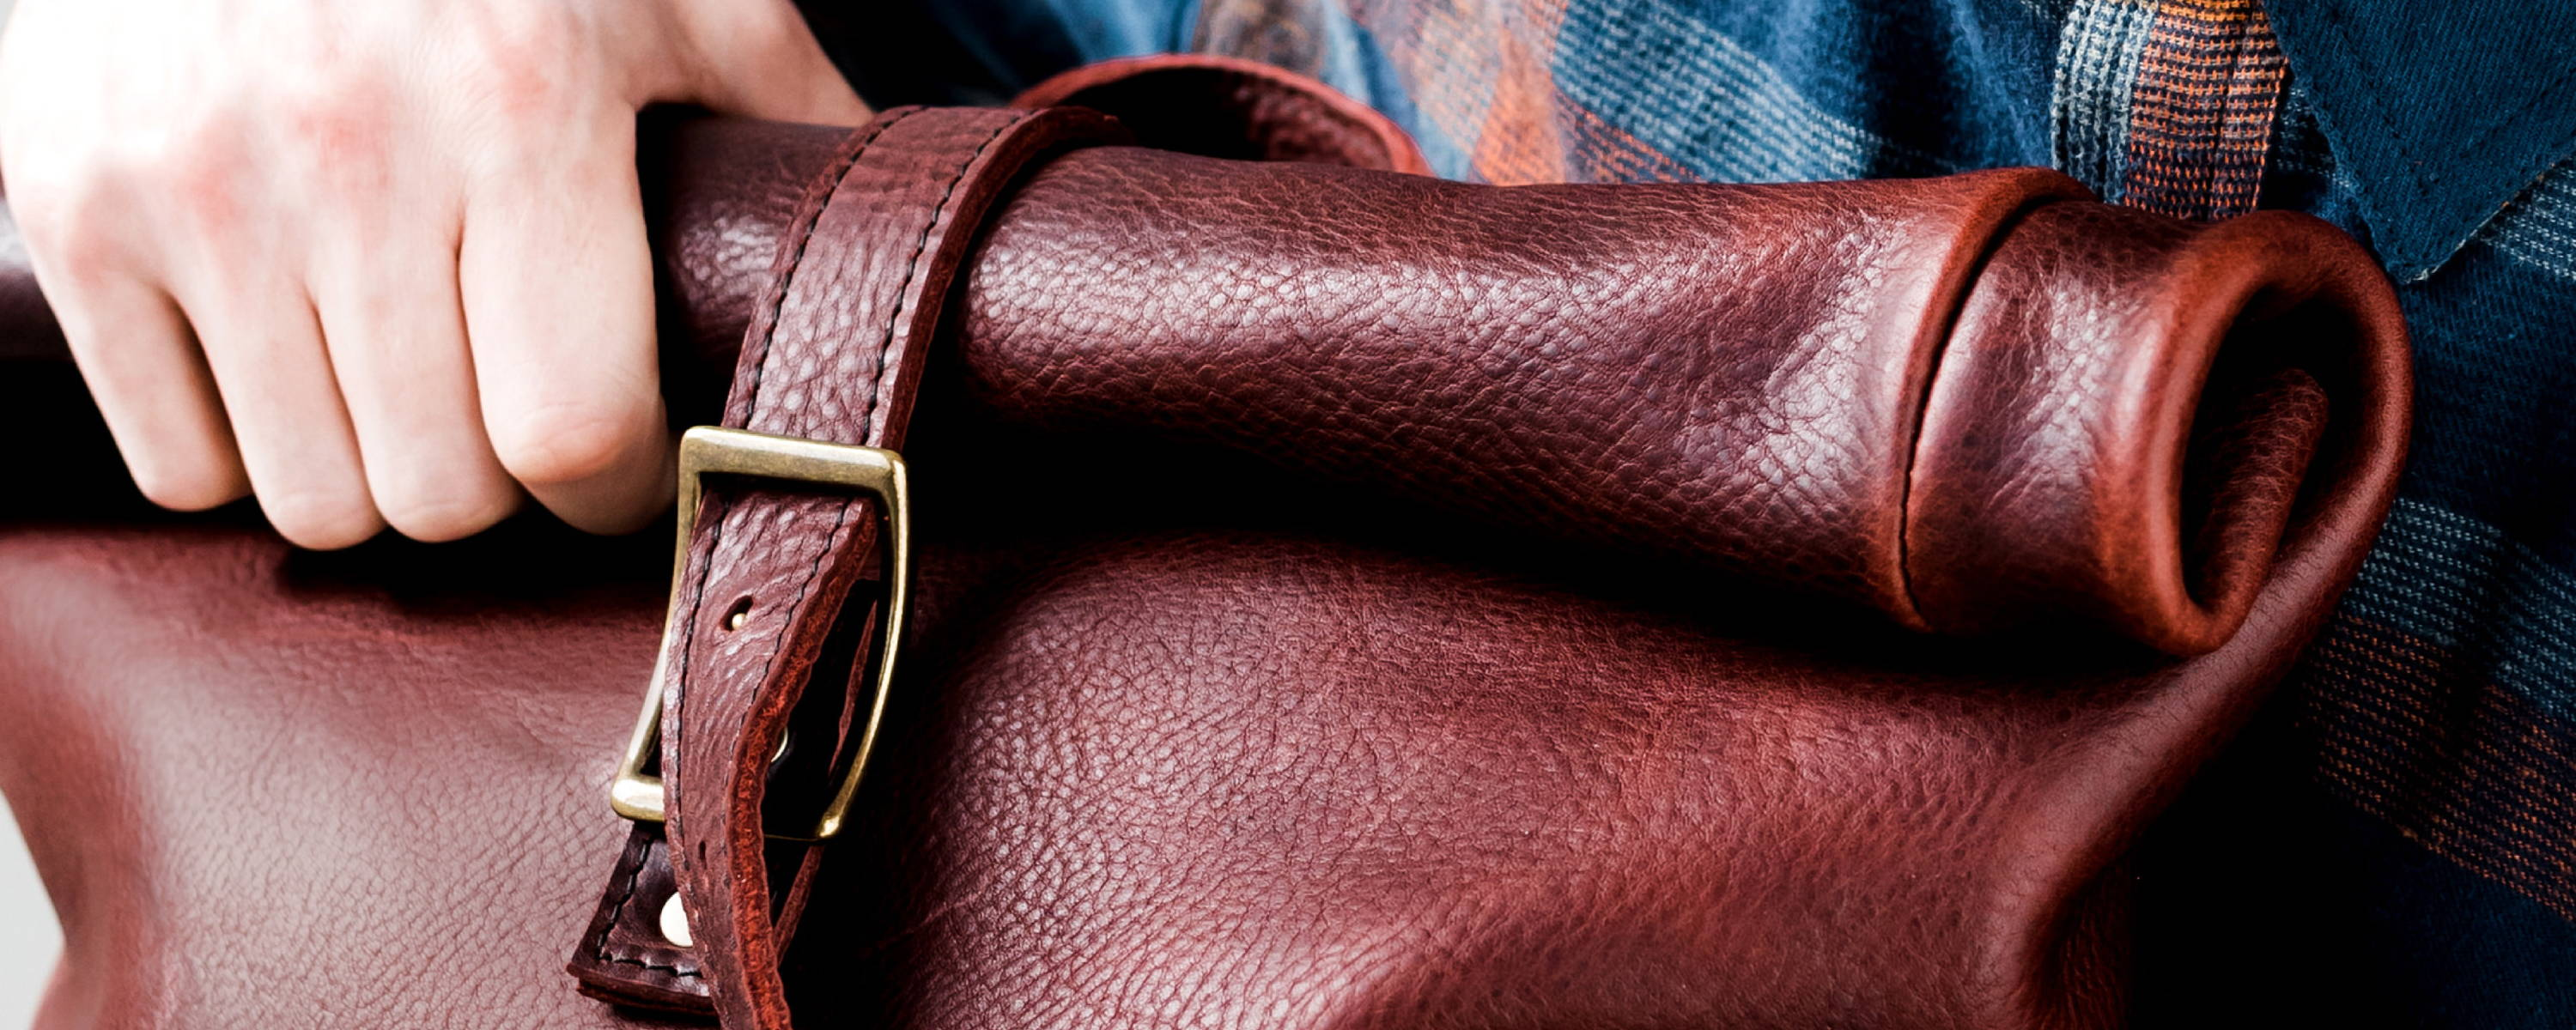 closeup photo of oxblood colored leather rolltop backpack by portland leather goods